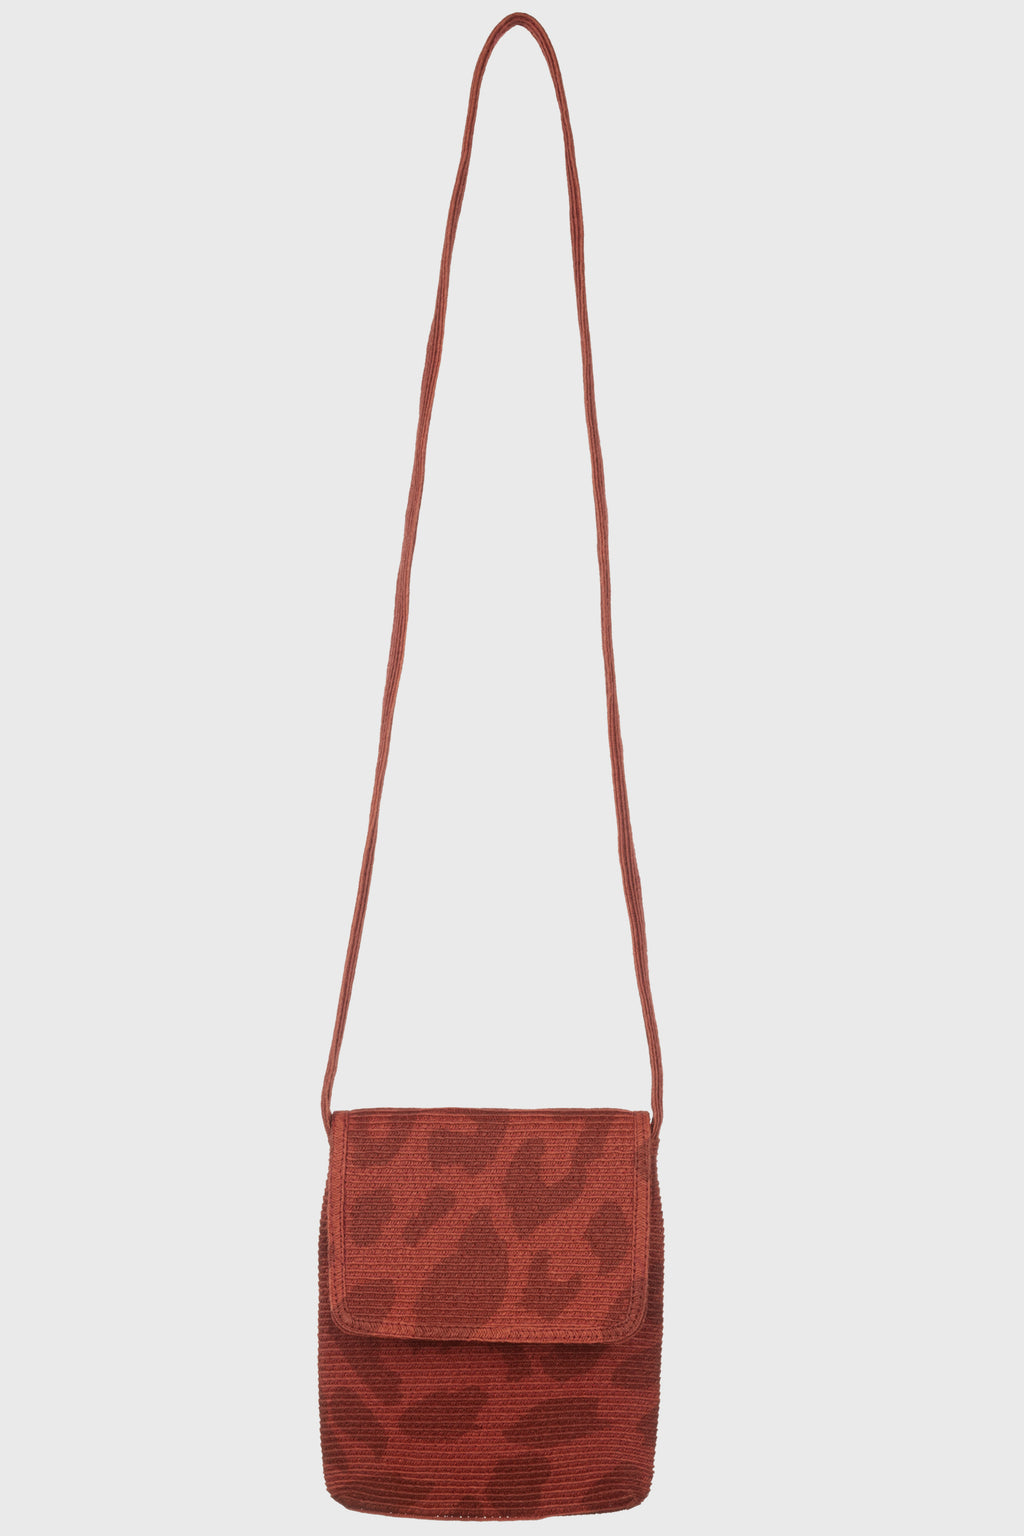 Leopard Printed Crossbody With Flap & Zip Closure Red (BSB3743)-CROSSBODY-BaySky